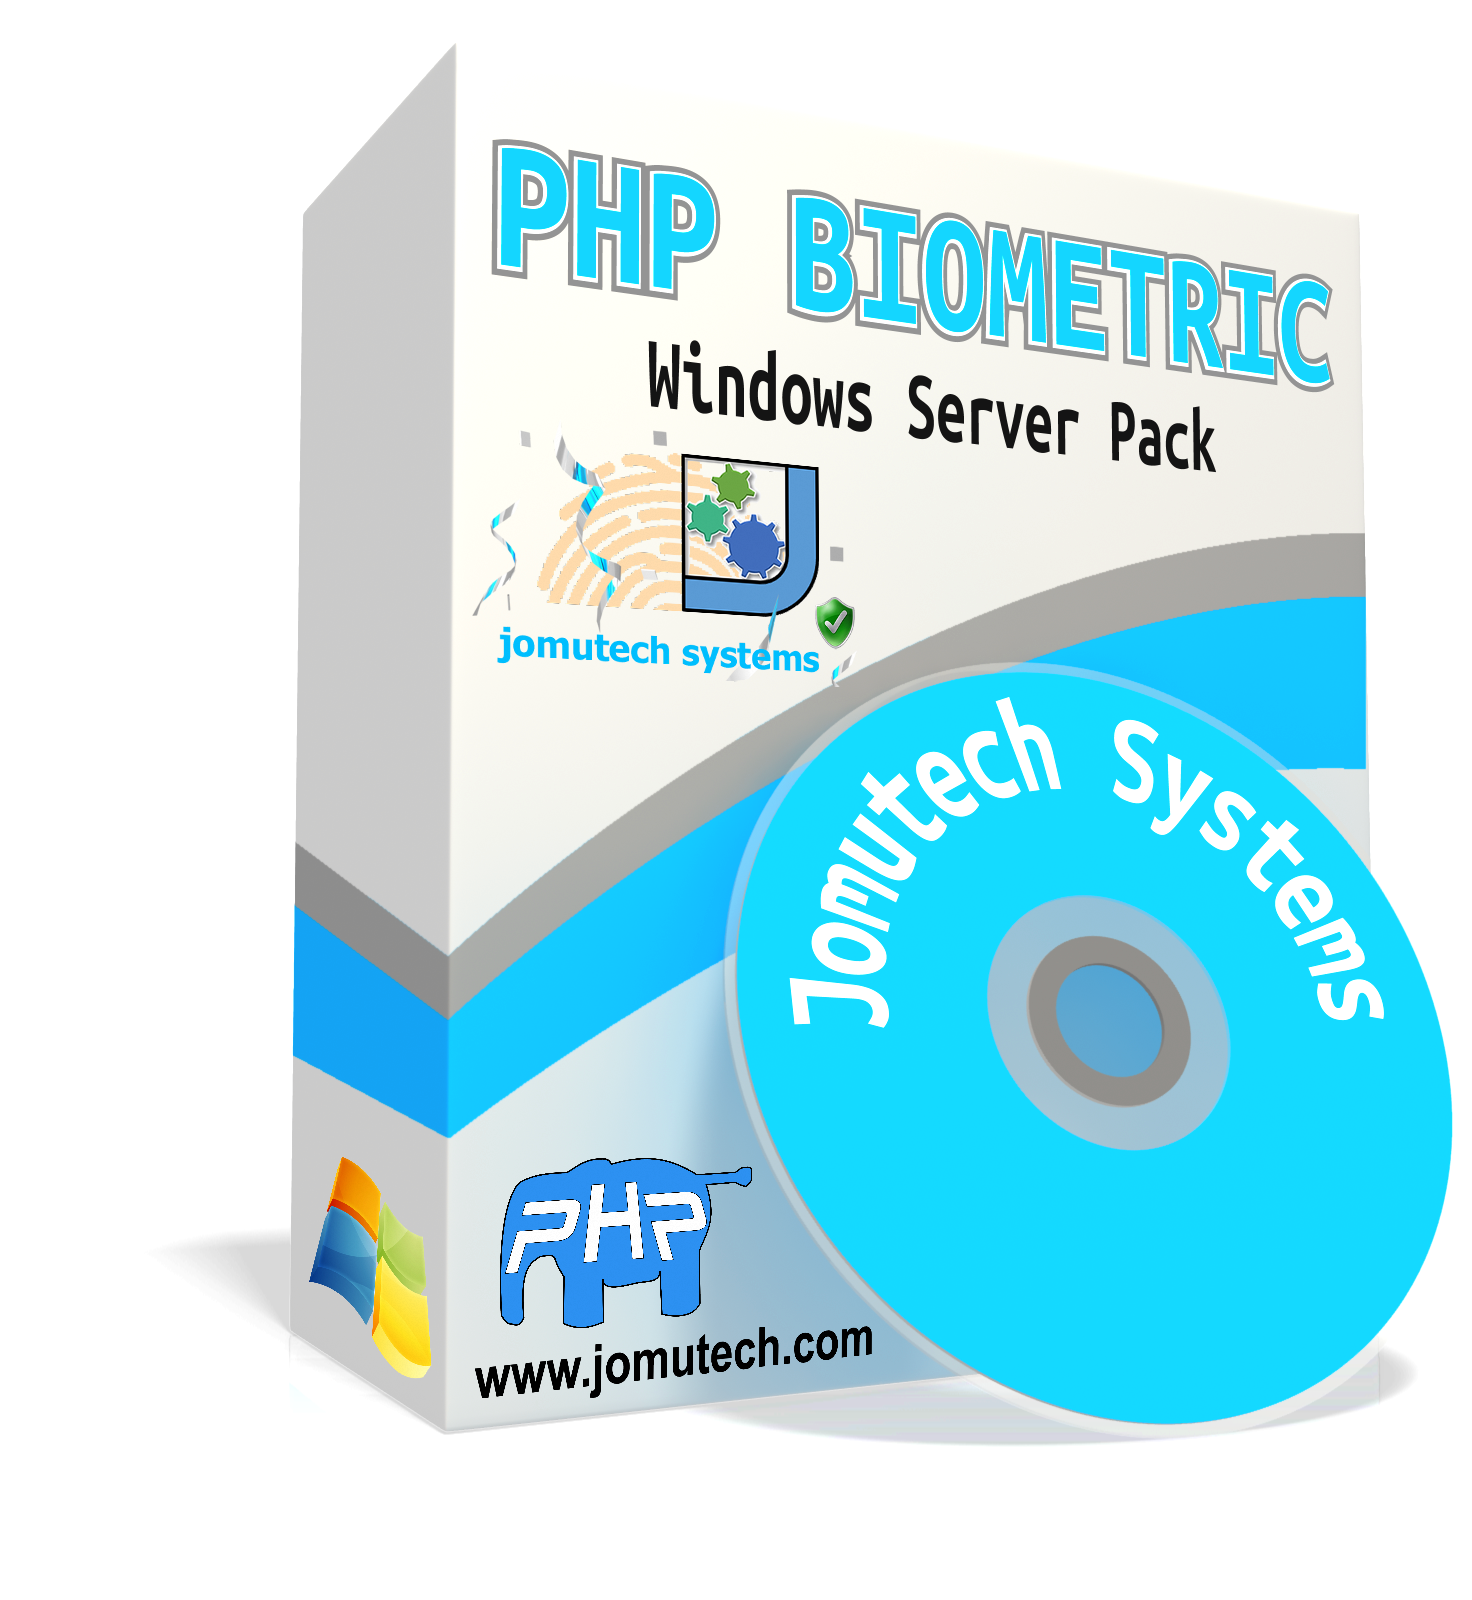 PHP Web Biometric Server